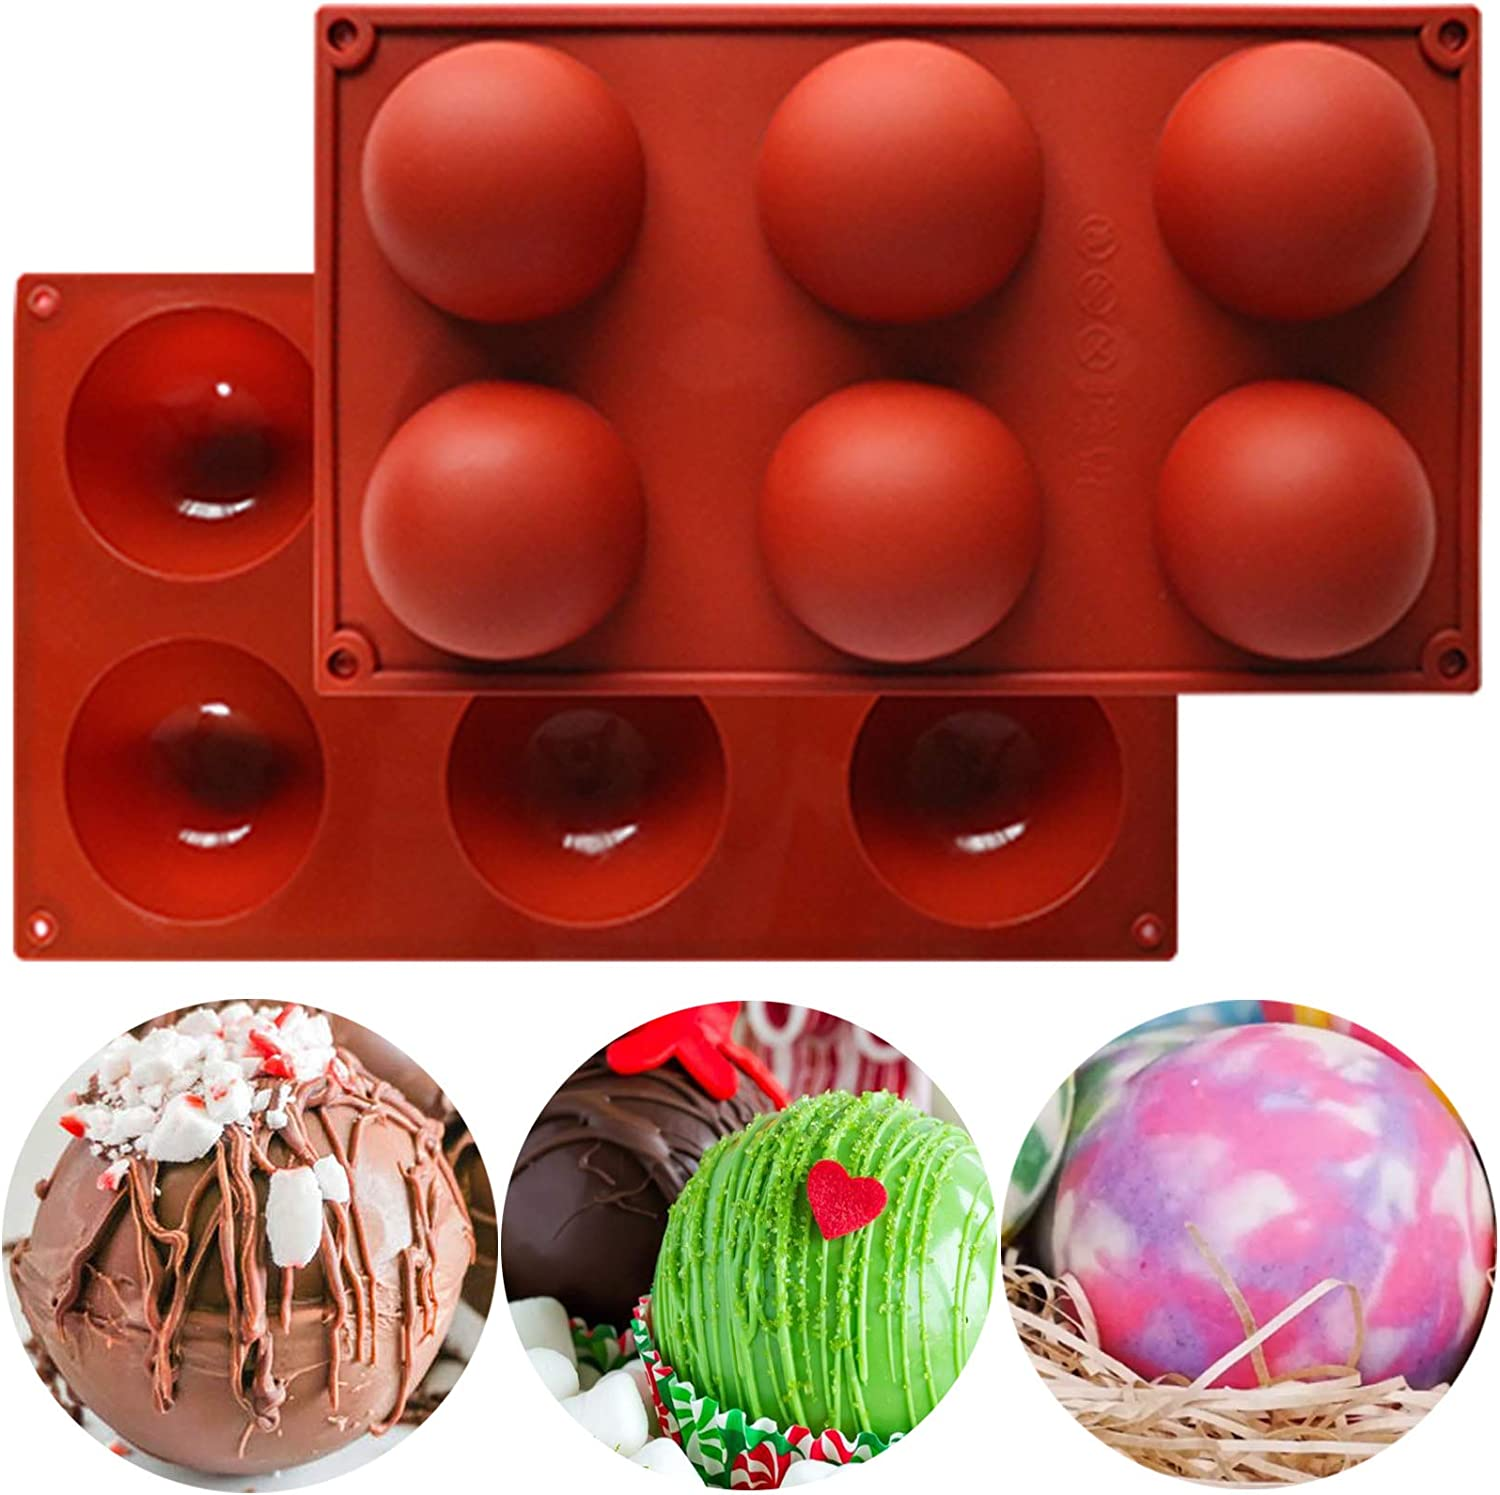 Large Silicone Molds 6 Holes Silicone Baking Mold Food Grade Silicone Baking Pan For Making Hot Chocolate Bombs,Cake,Candy,Jelly,Pudding,Dome Mousse-2 Pack